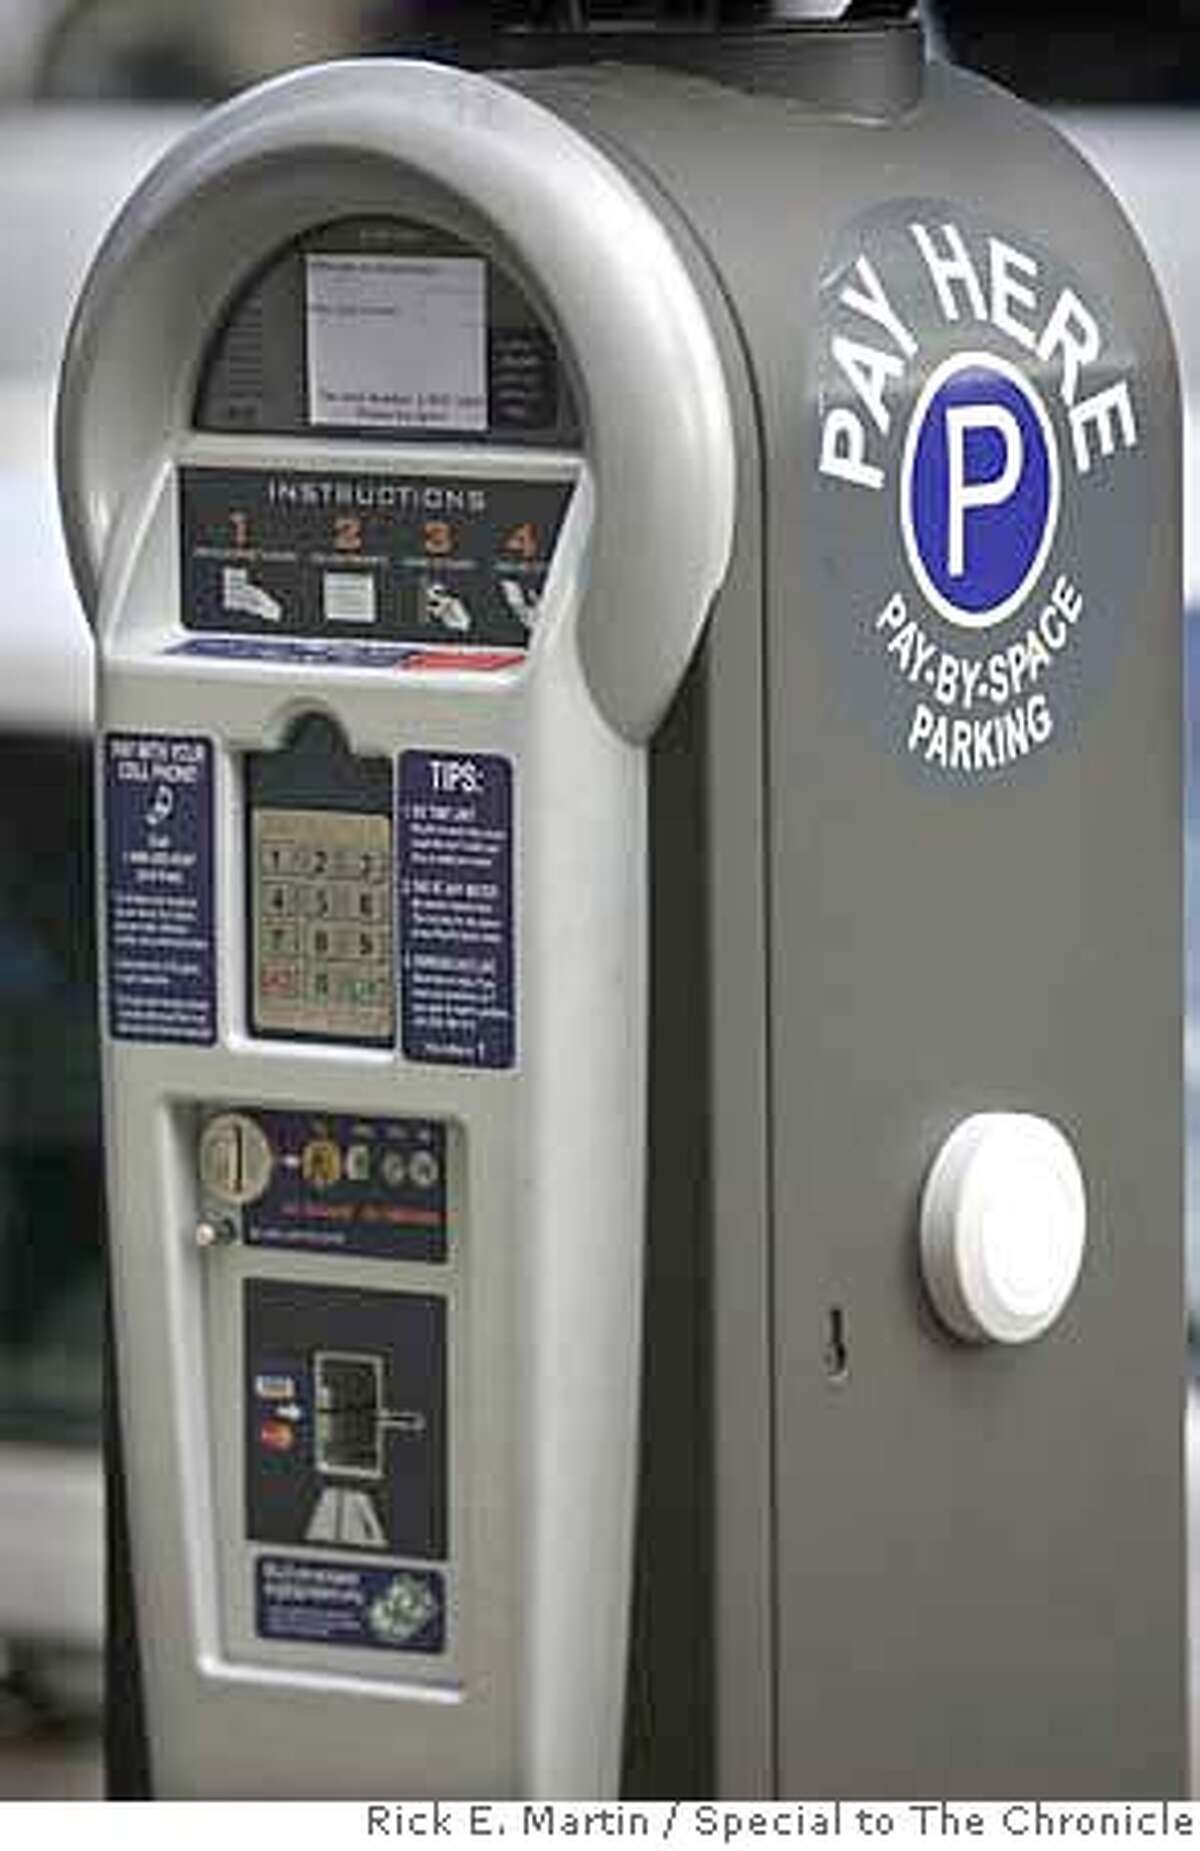 10/11/07 REDWOOD CITY, CA A central parking meter payment station on Broadway Ave. in Downtown Redwood City, the machine accepts credit cards as well as cash. Rick E. Martin / Special to The Chronicle MANDATORY CREDIT FOR PHOTOG AND SAN FRANCISCO CHRONICLE/NO SALES-MAGS OUT